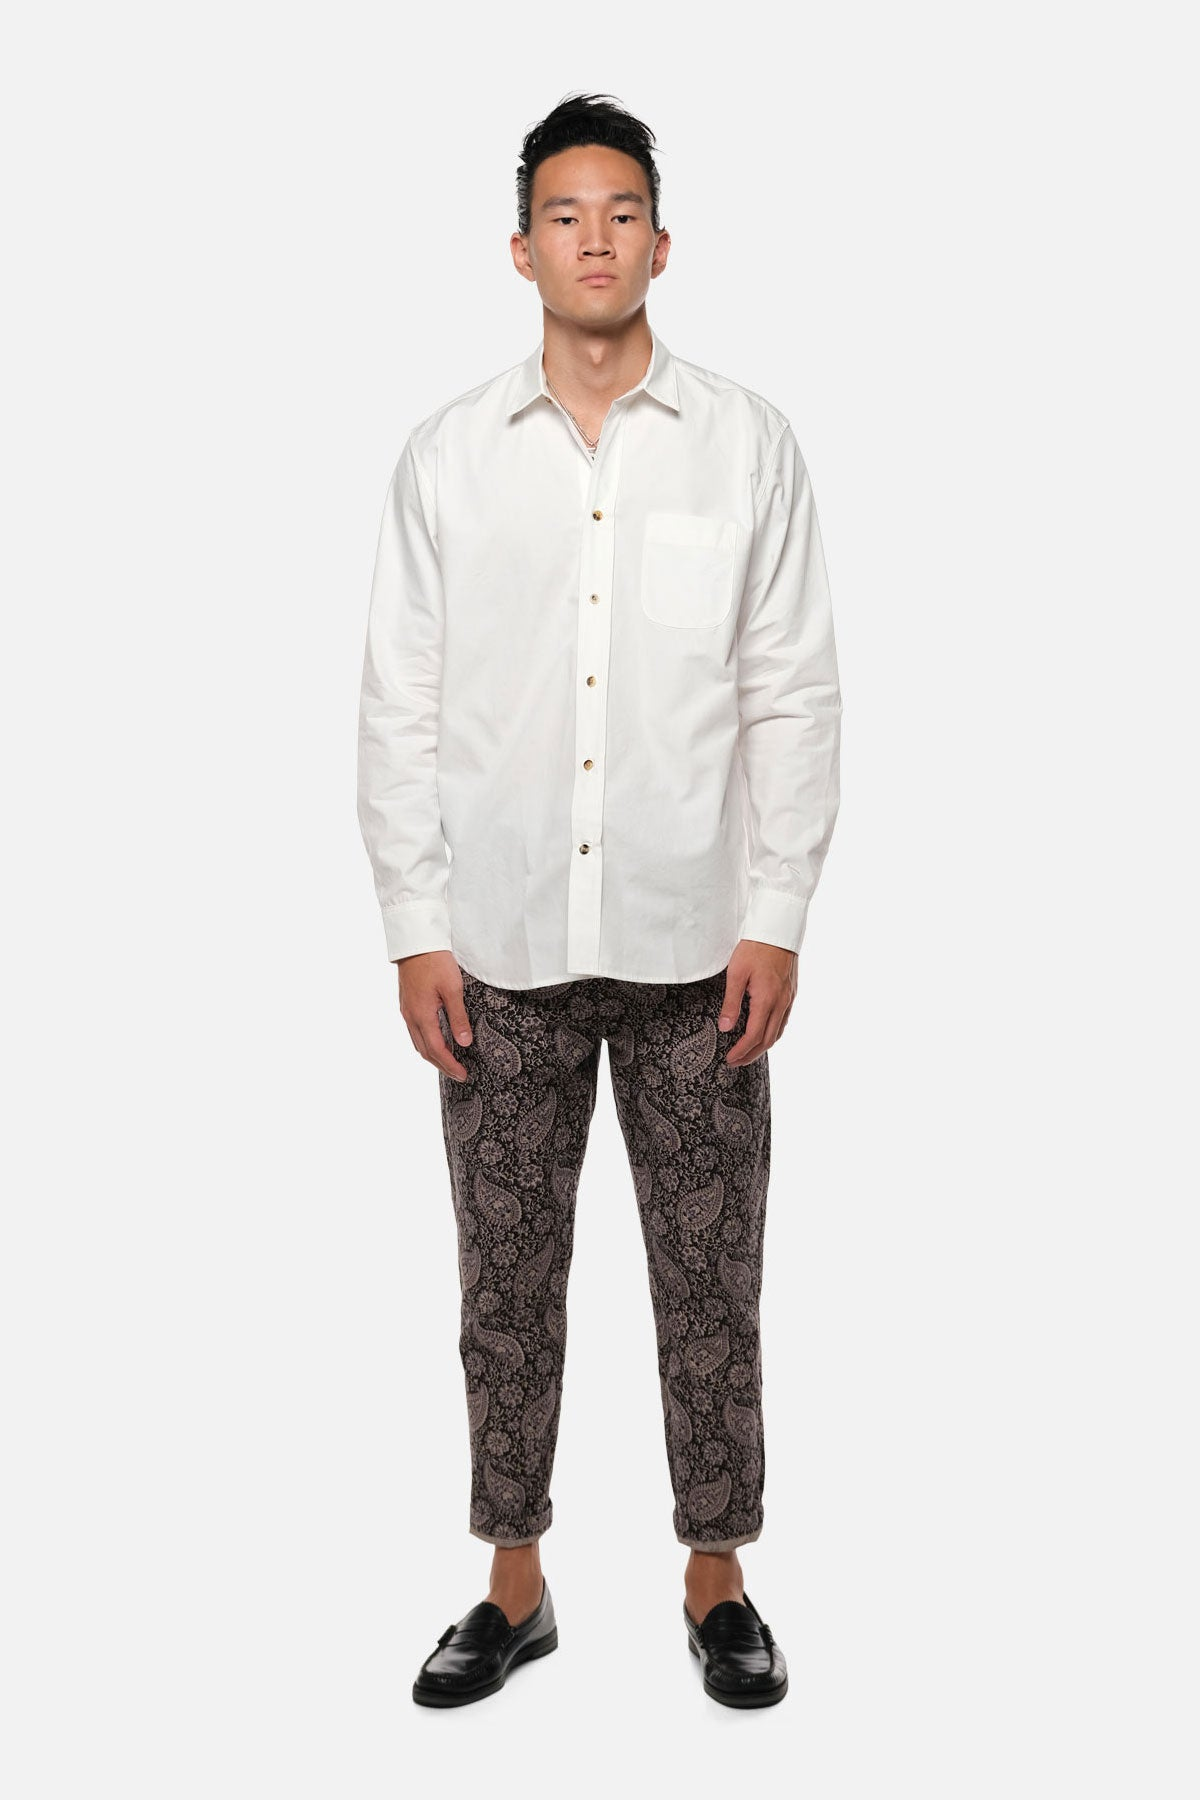 1905 SHIRT IN WHITE - Fortune Goods